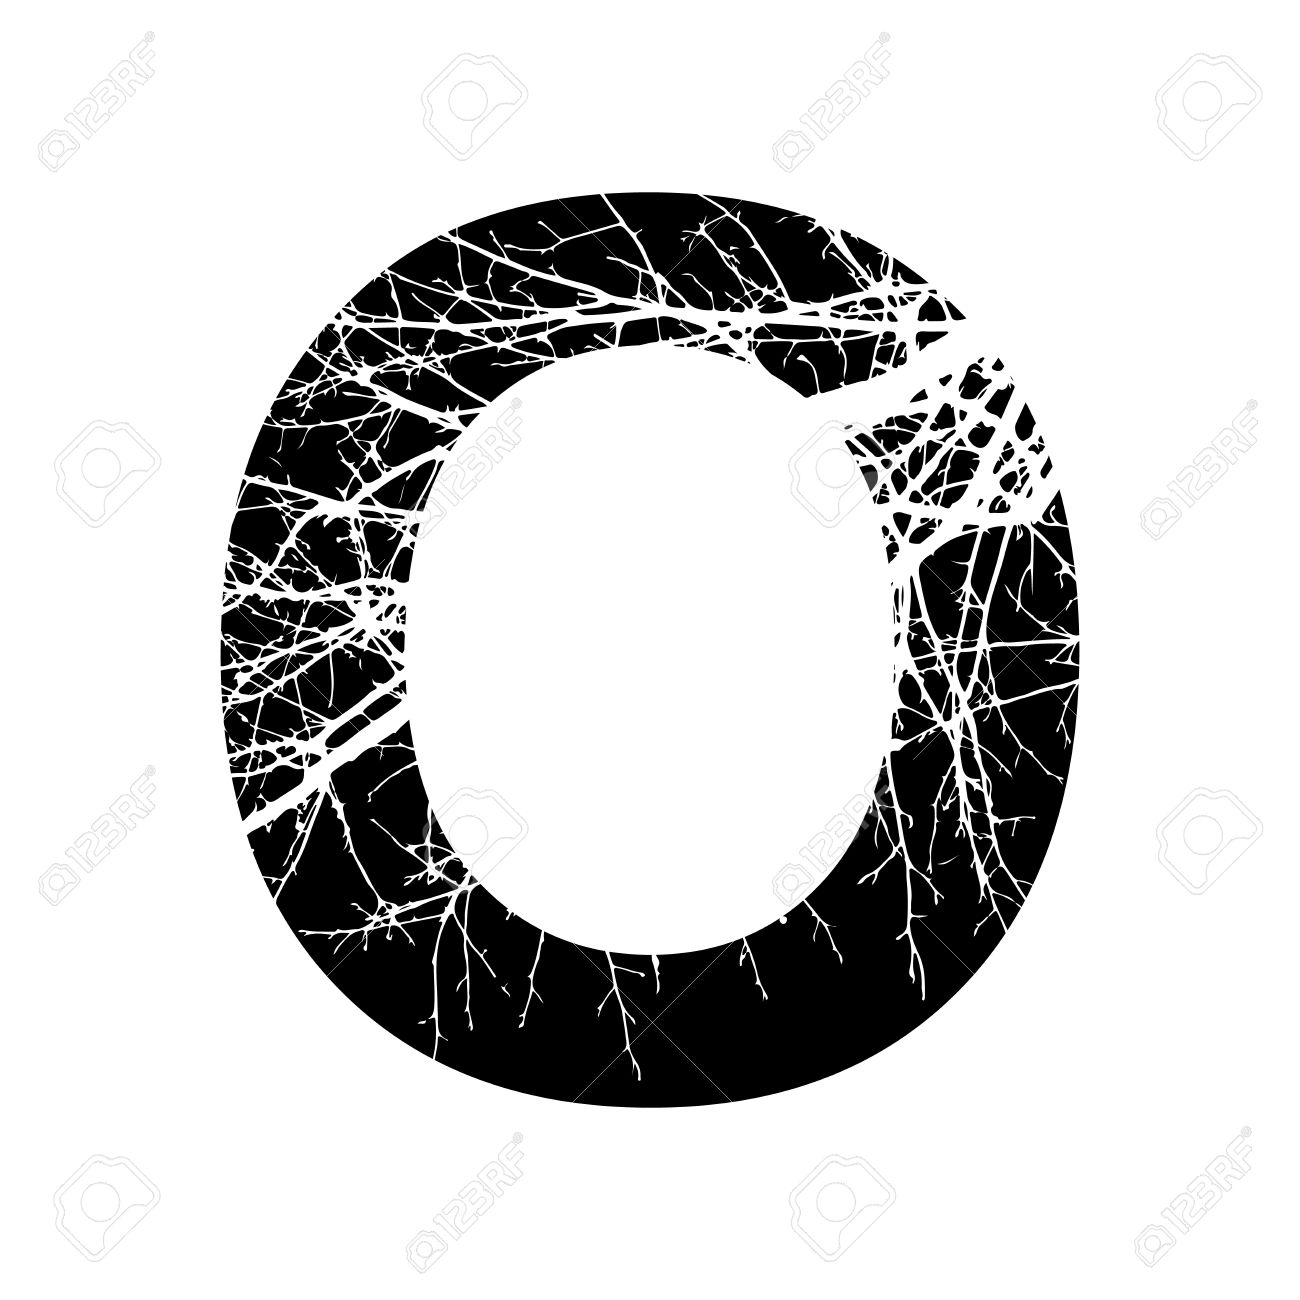 Letter O Double Exposure With White Tree On Black Background Vector Royalty Free Cliparts Vectors And Stock Illustration Image 51073535